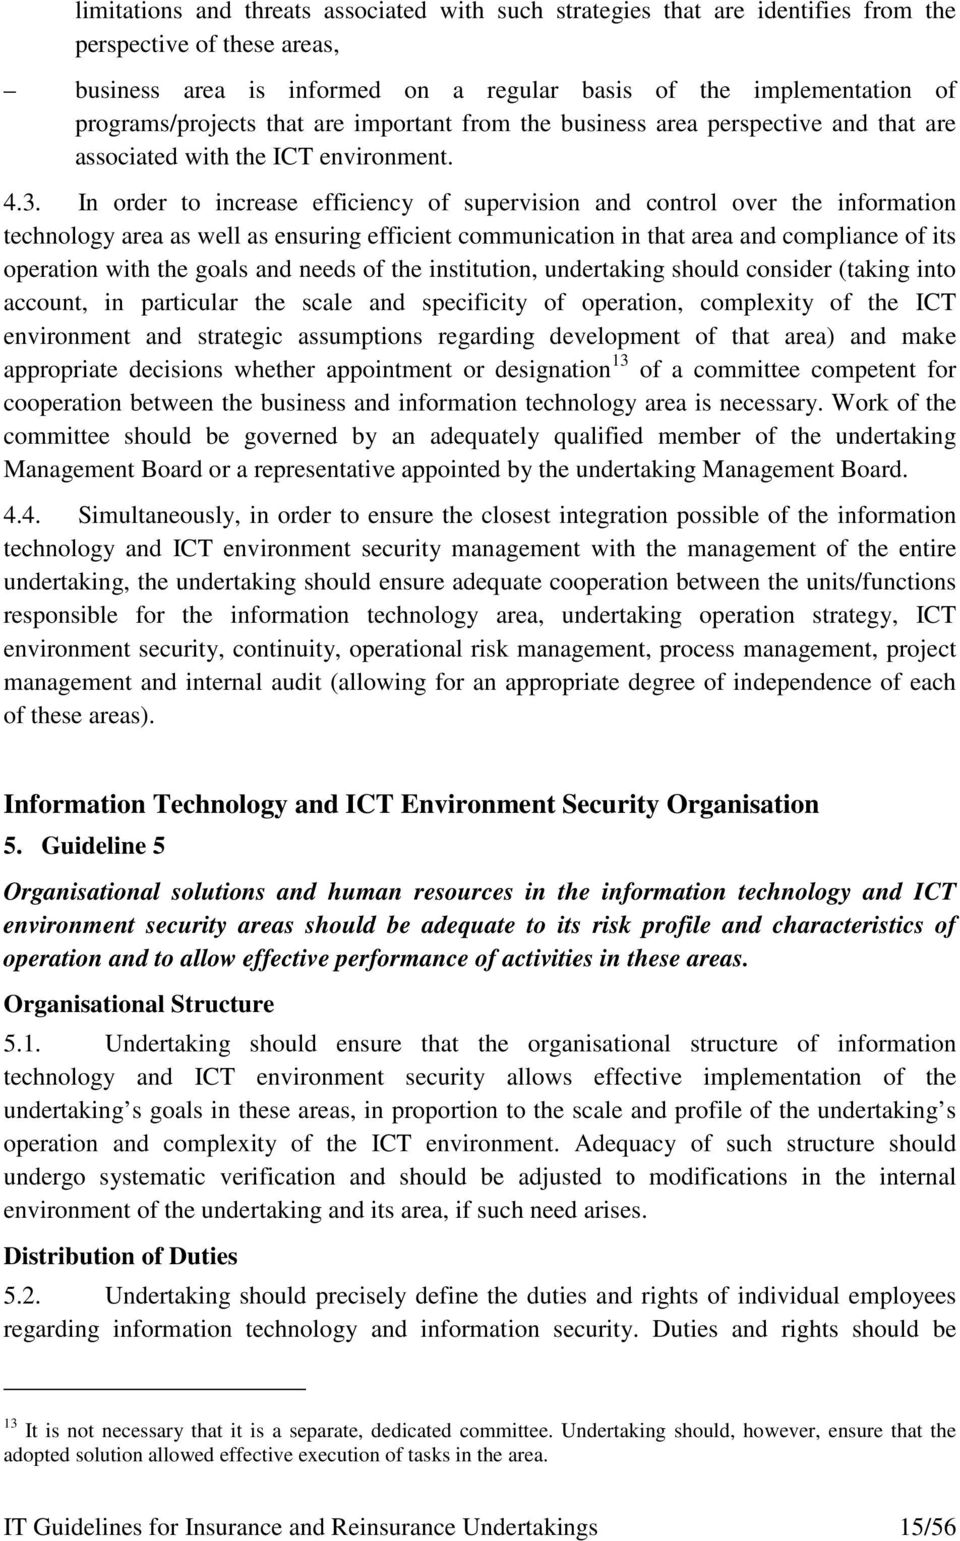 In order to increase efficiency of supervision and control over the information technology area as well as ensuring efficient communication in that area and compliance of its operation with the goals